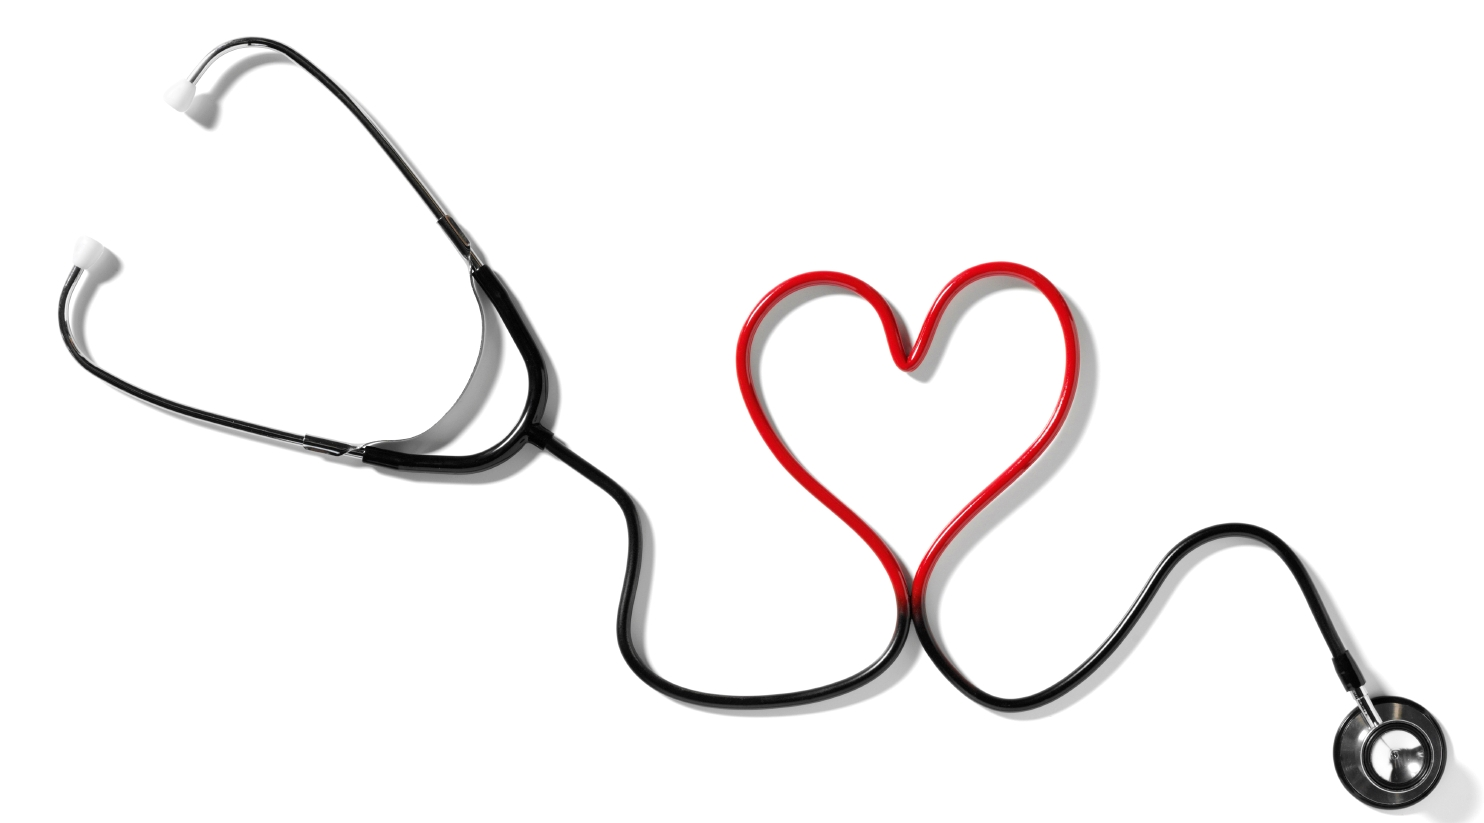 Top stethoscope clip art black and white heart images for